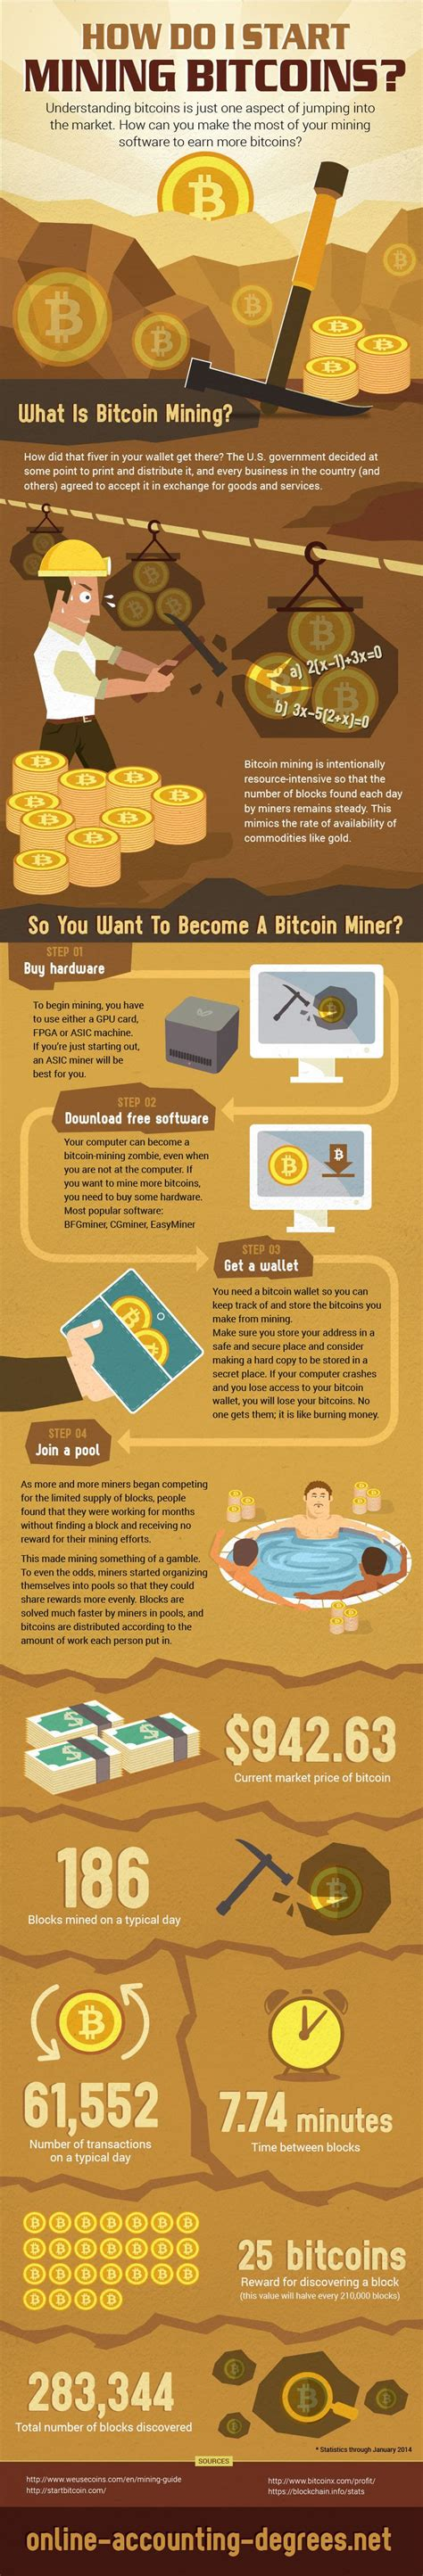 bitcoin understanding bitcoin mining investing trading for beginners the cryptomasher series volume 1 books how to start mining bitcoins infographic best infographics